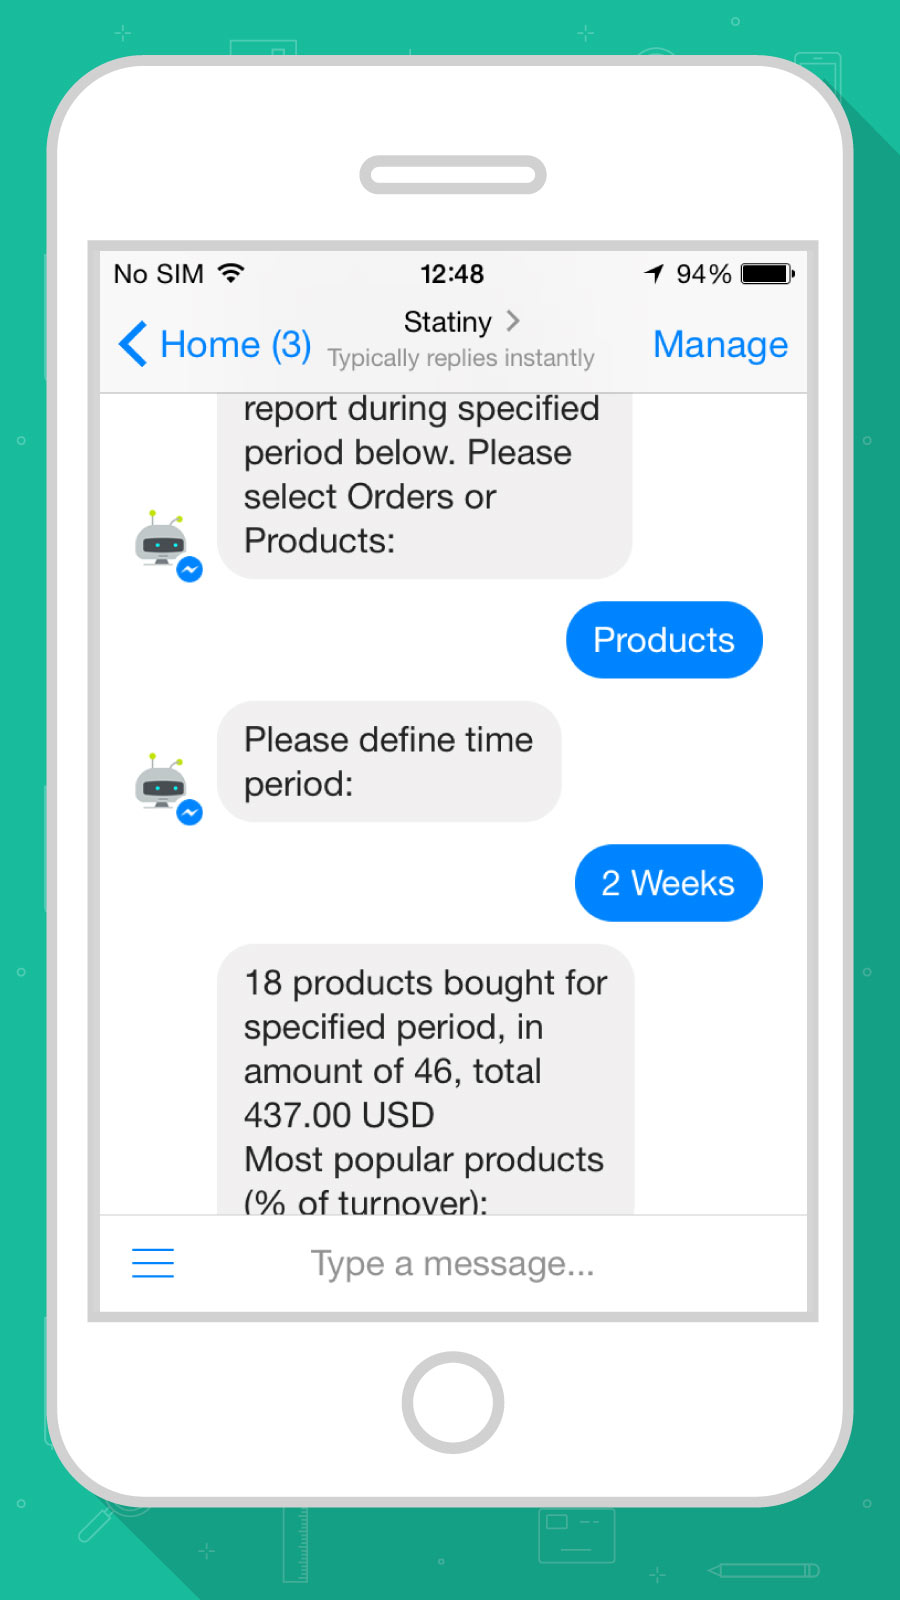 Example of some store sales data in Facebook Messenger